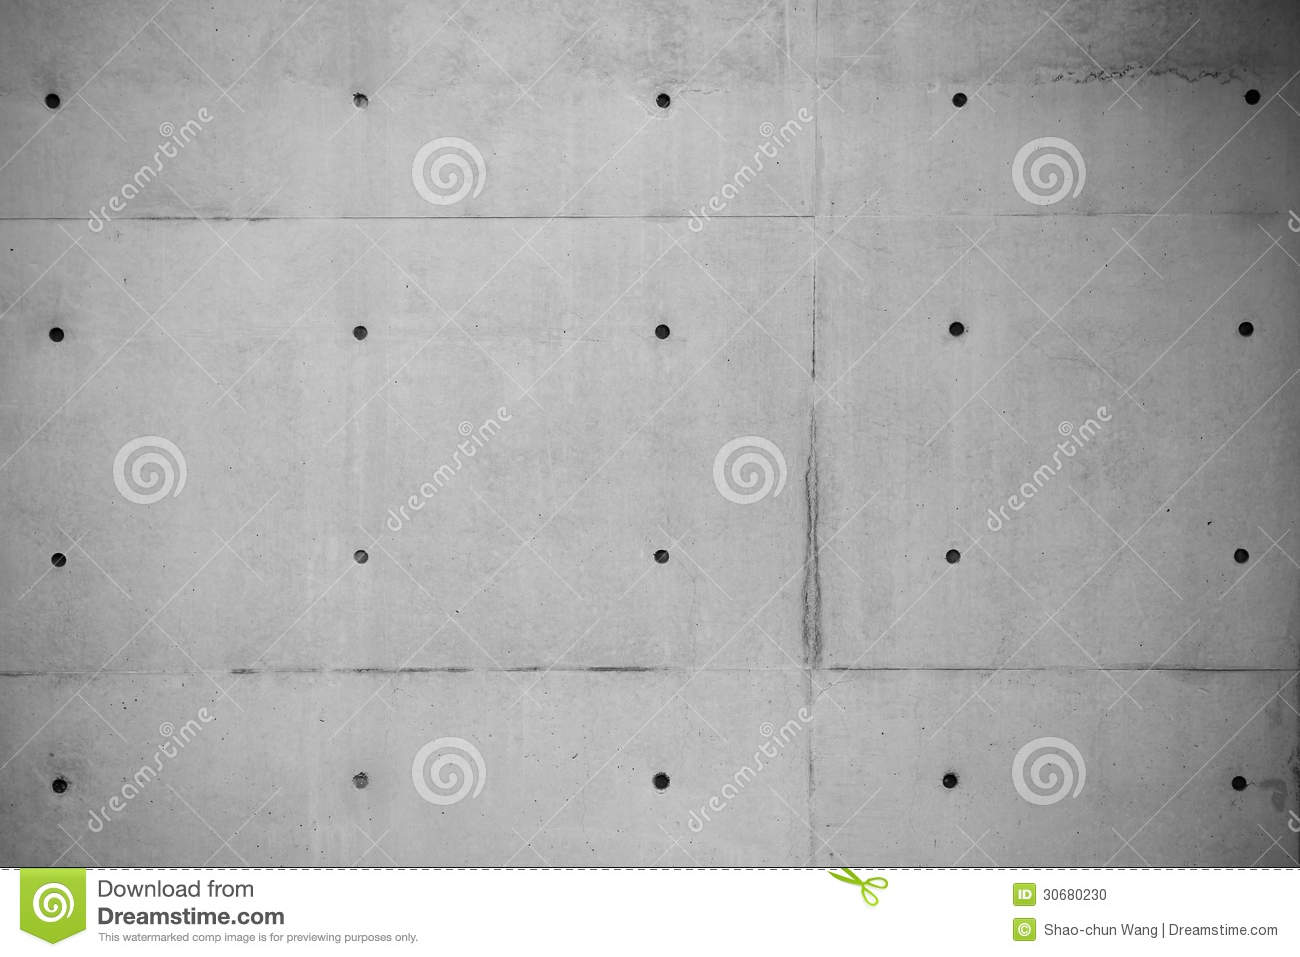 fe56ee7dc94f Grunge Concrete Cement Wall Stock Photo - Image of background